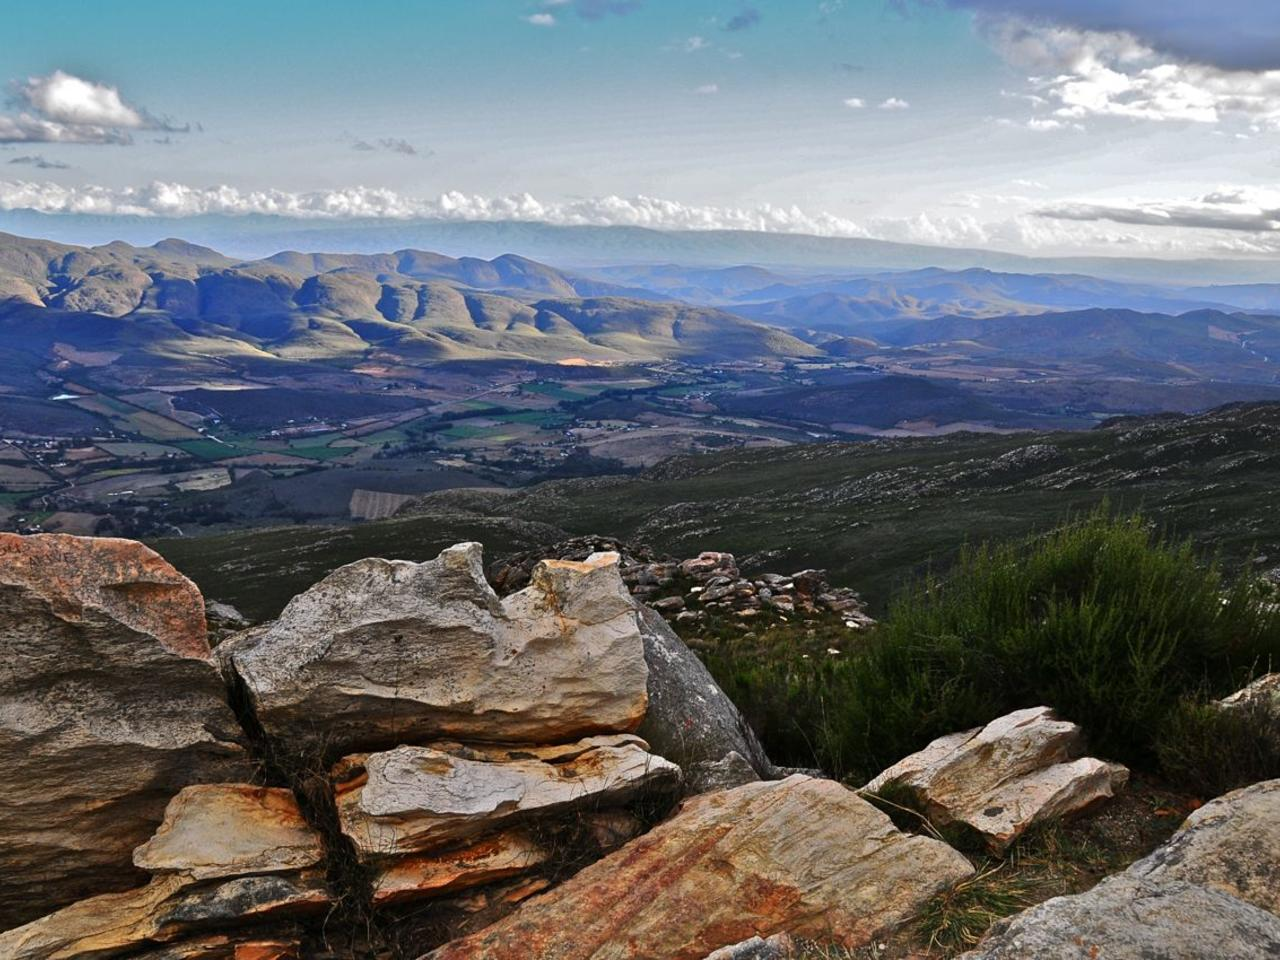 Rondreis over de Swartberg Pass